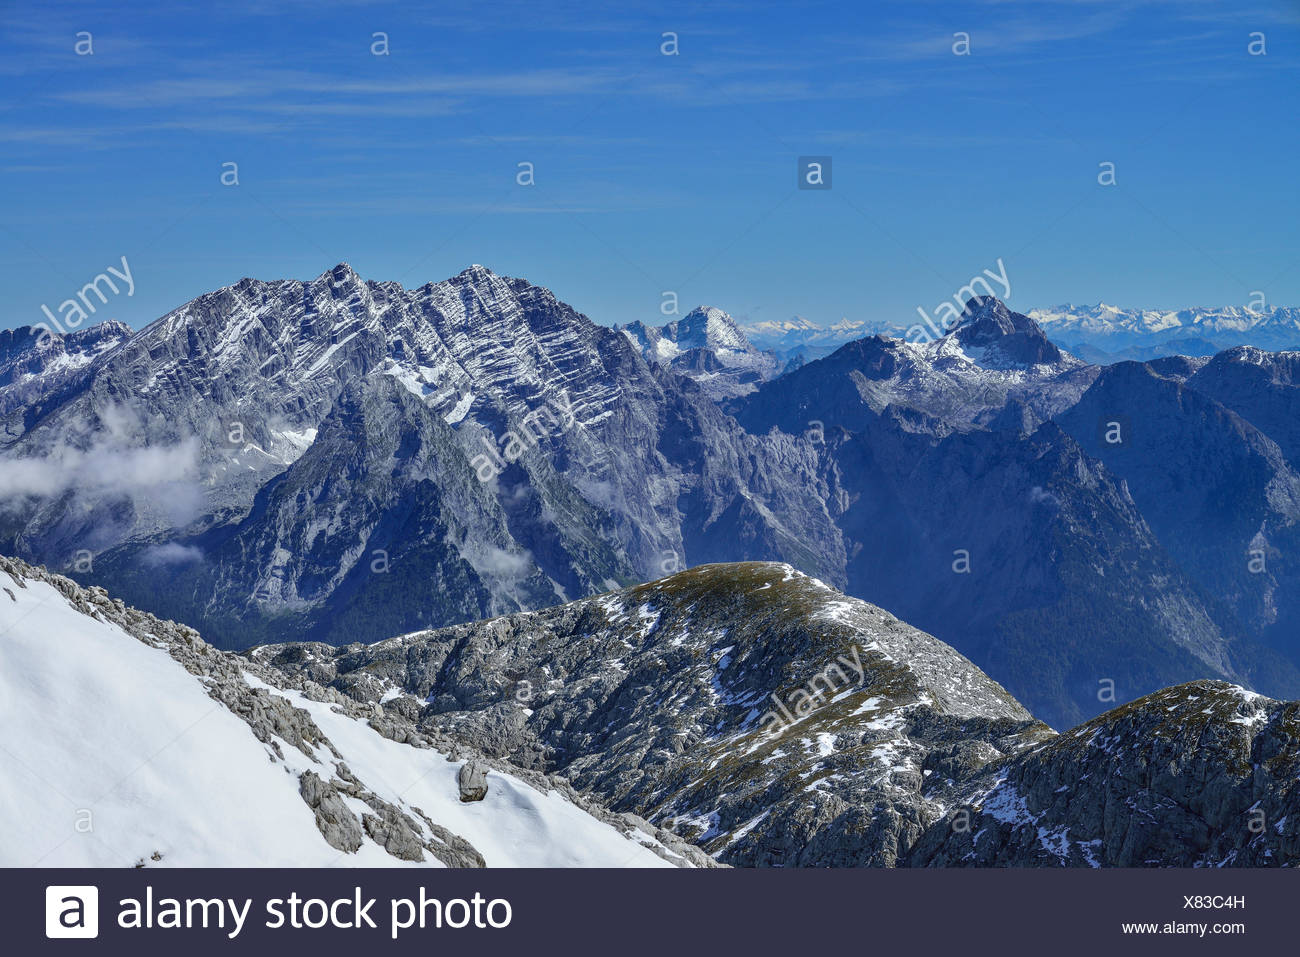 View from mount Hohe Goell over mountain scenery, Berchtesgaden National Park, Berchtesgaden Alps, Upper Bavaria, Bavaria, Germany Stock Photo